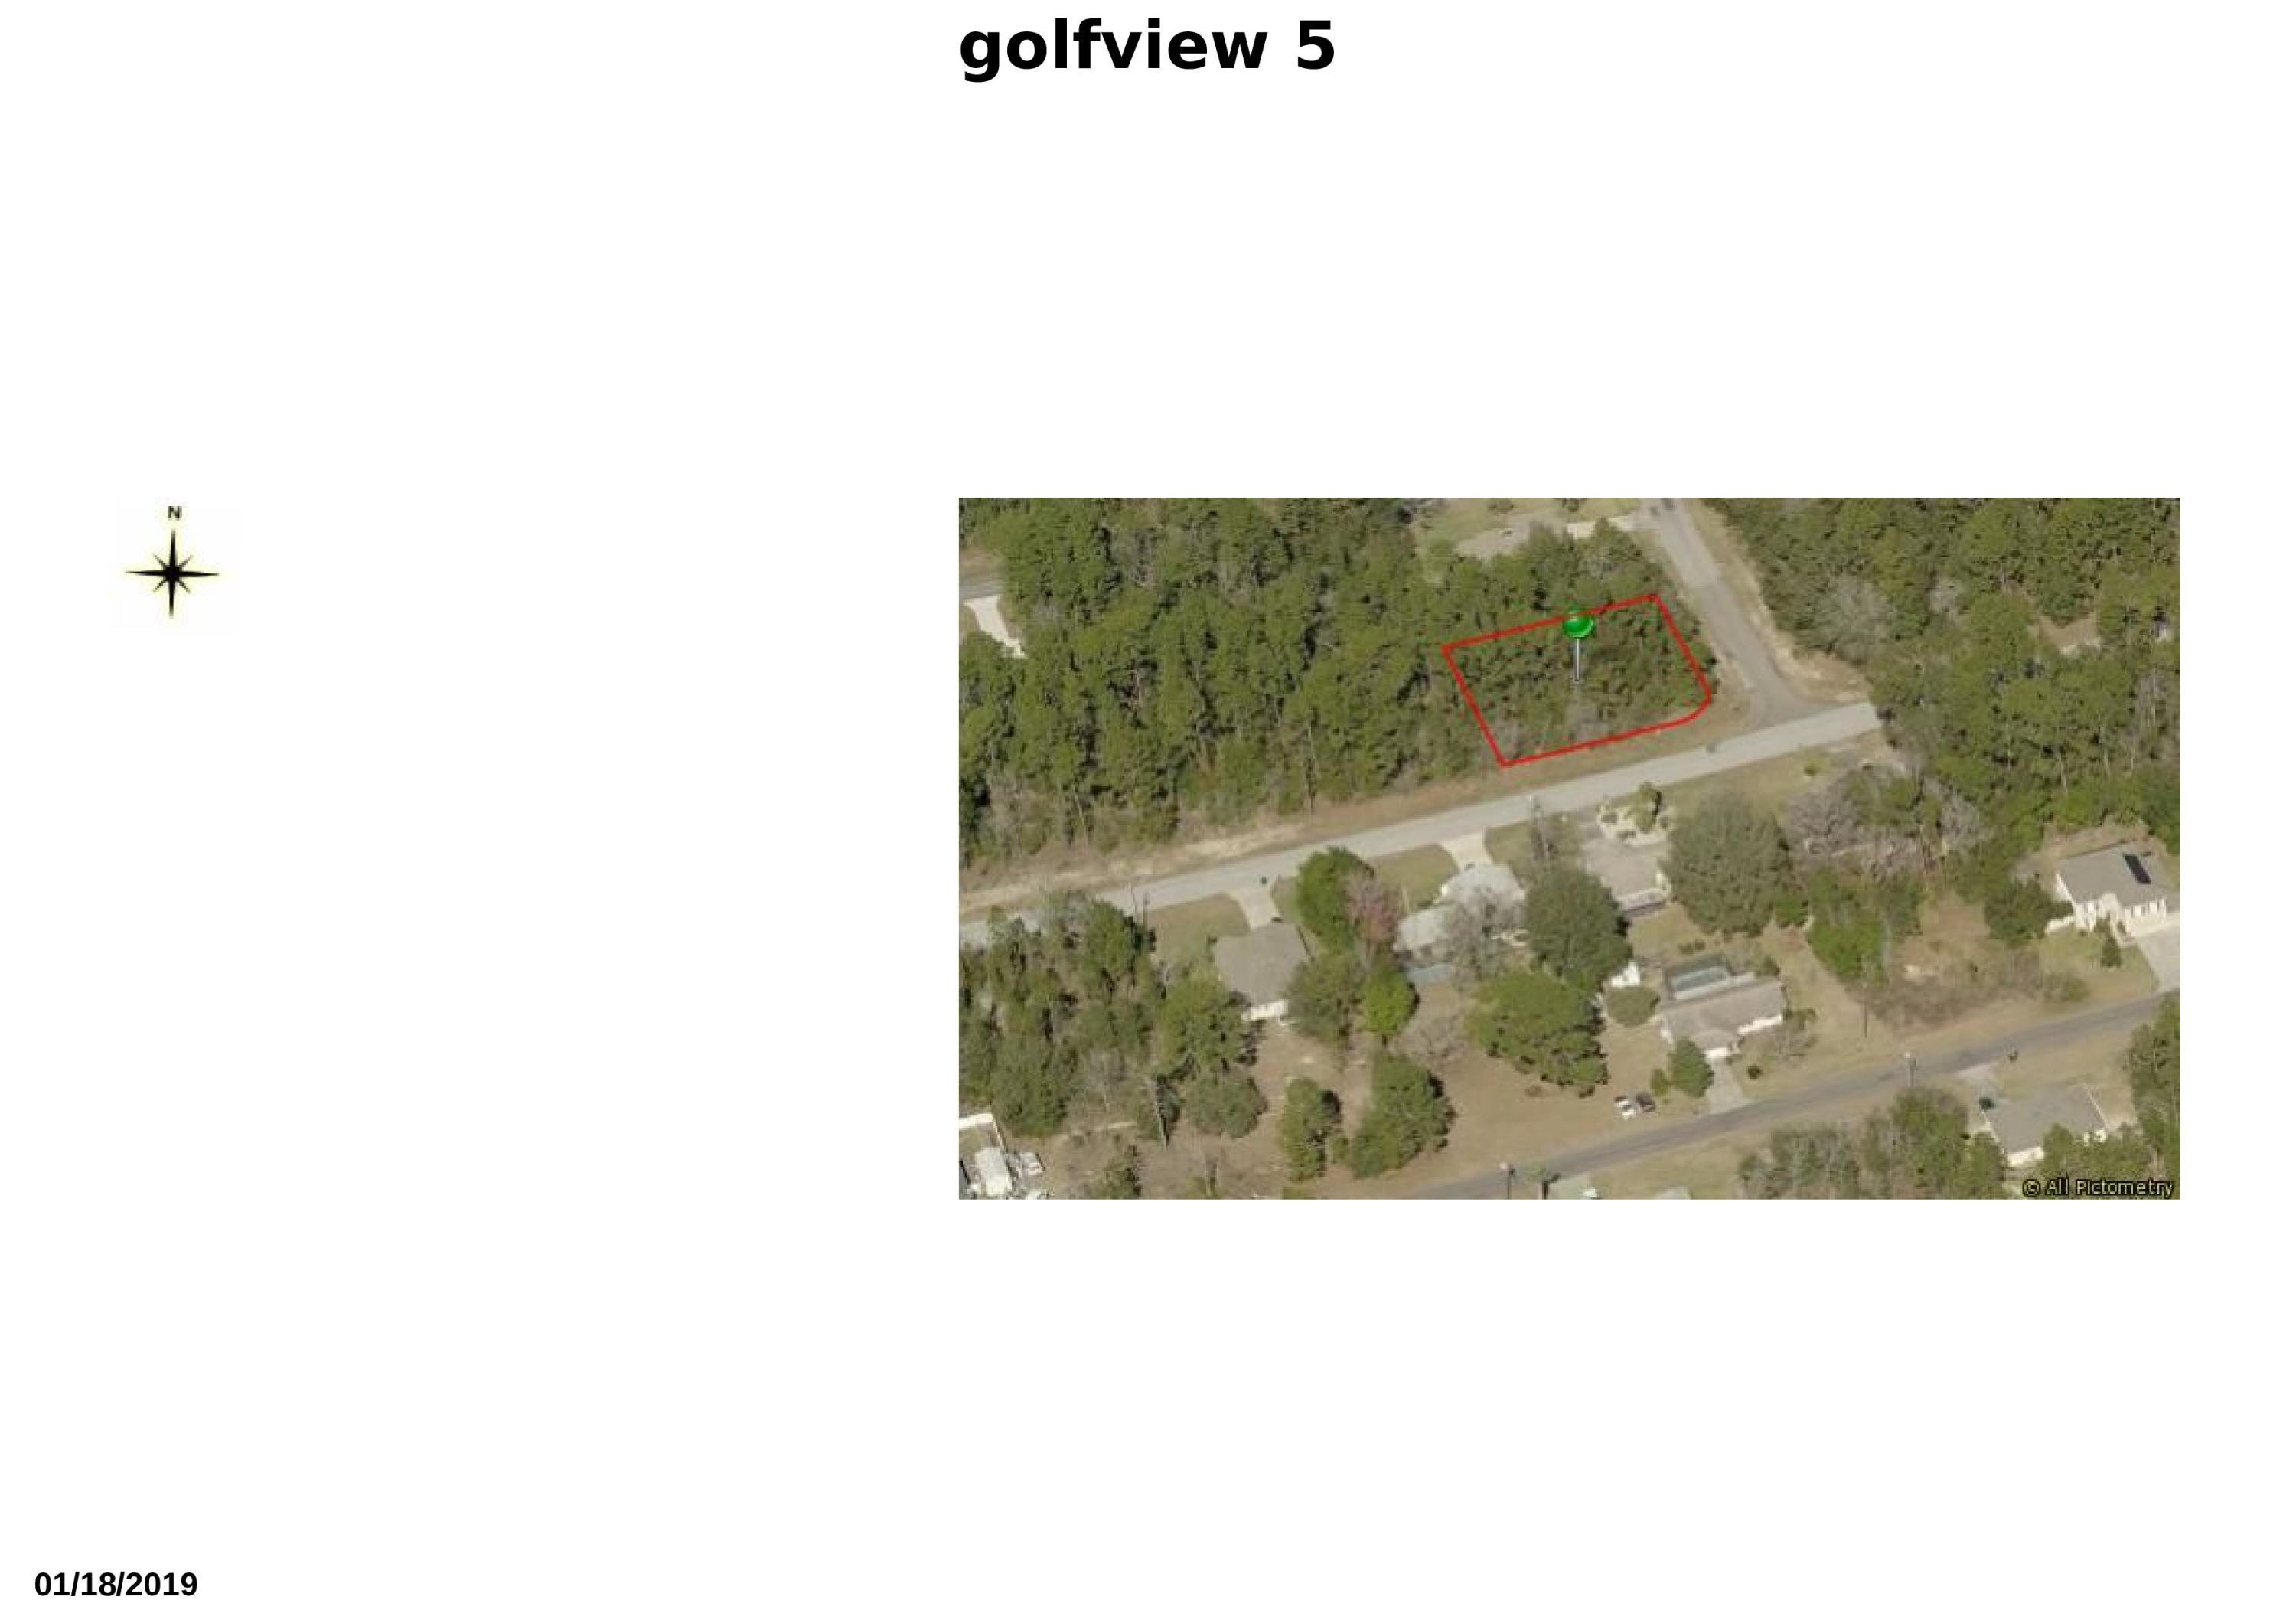 golfview 5